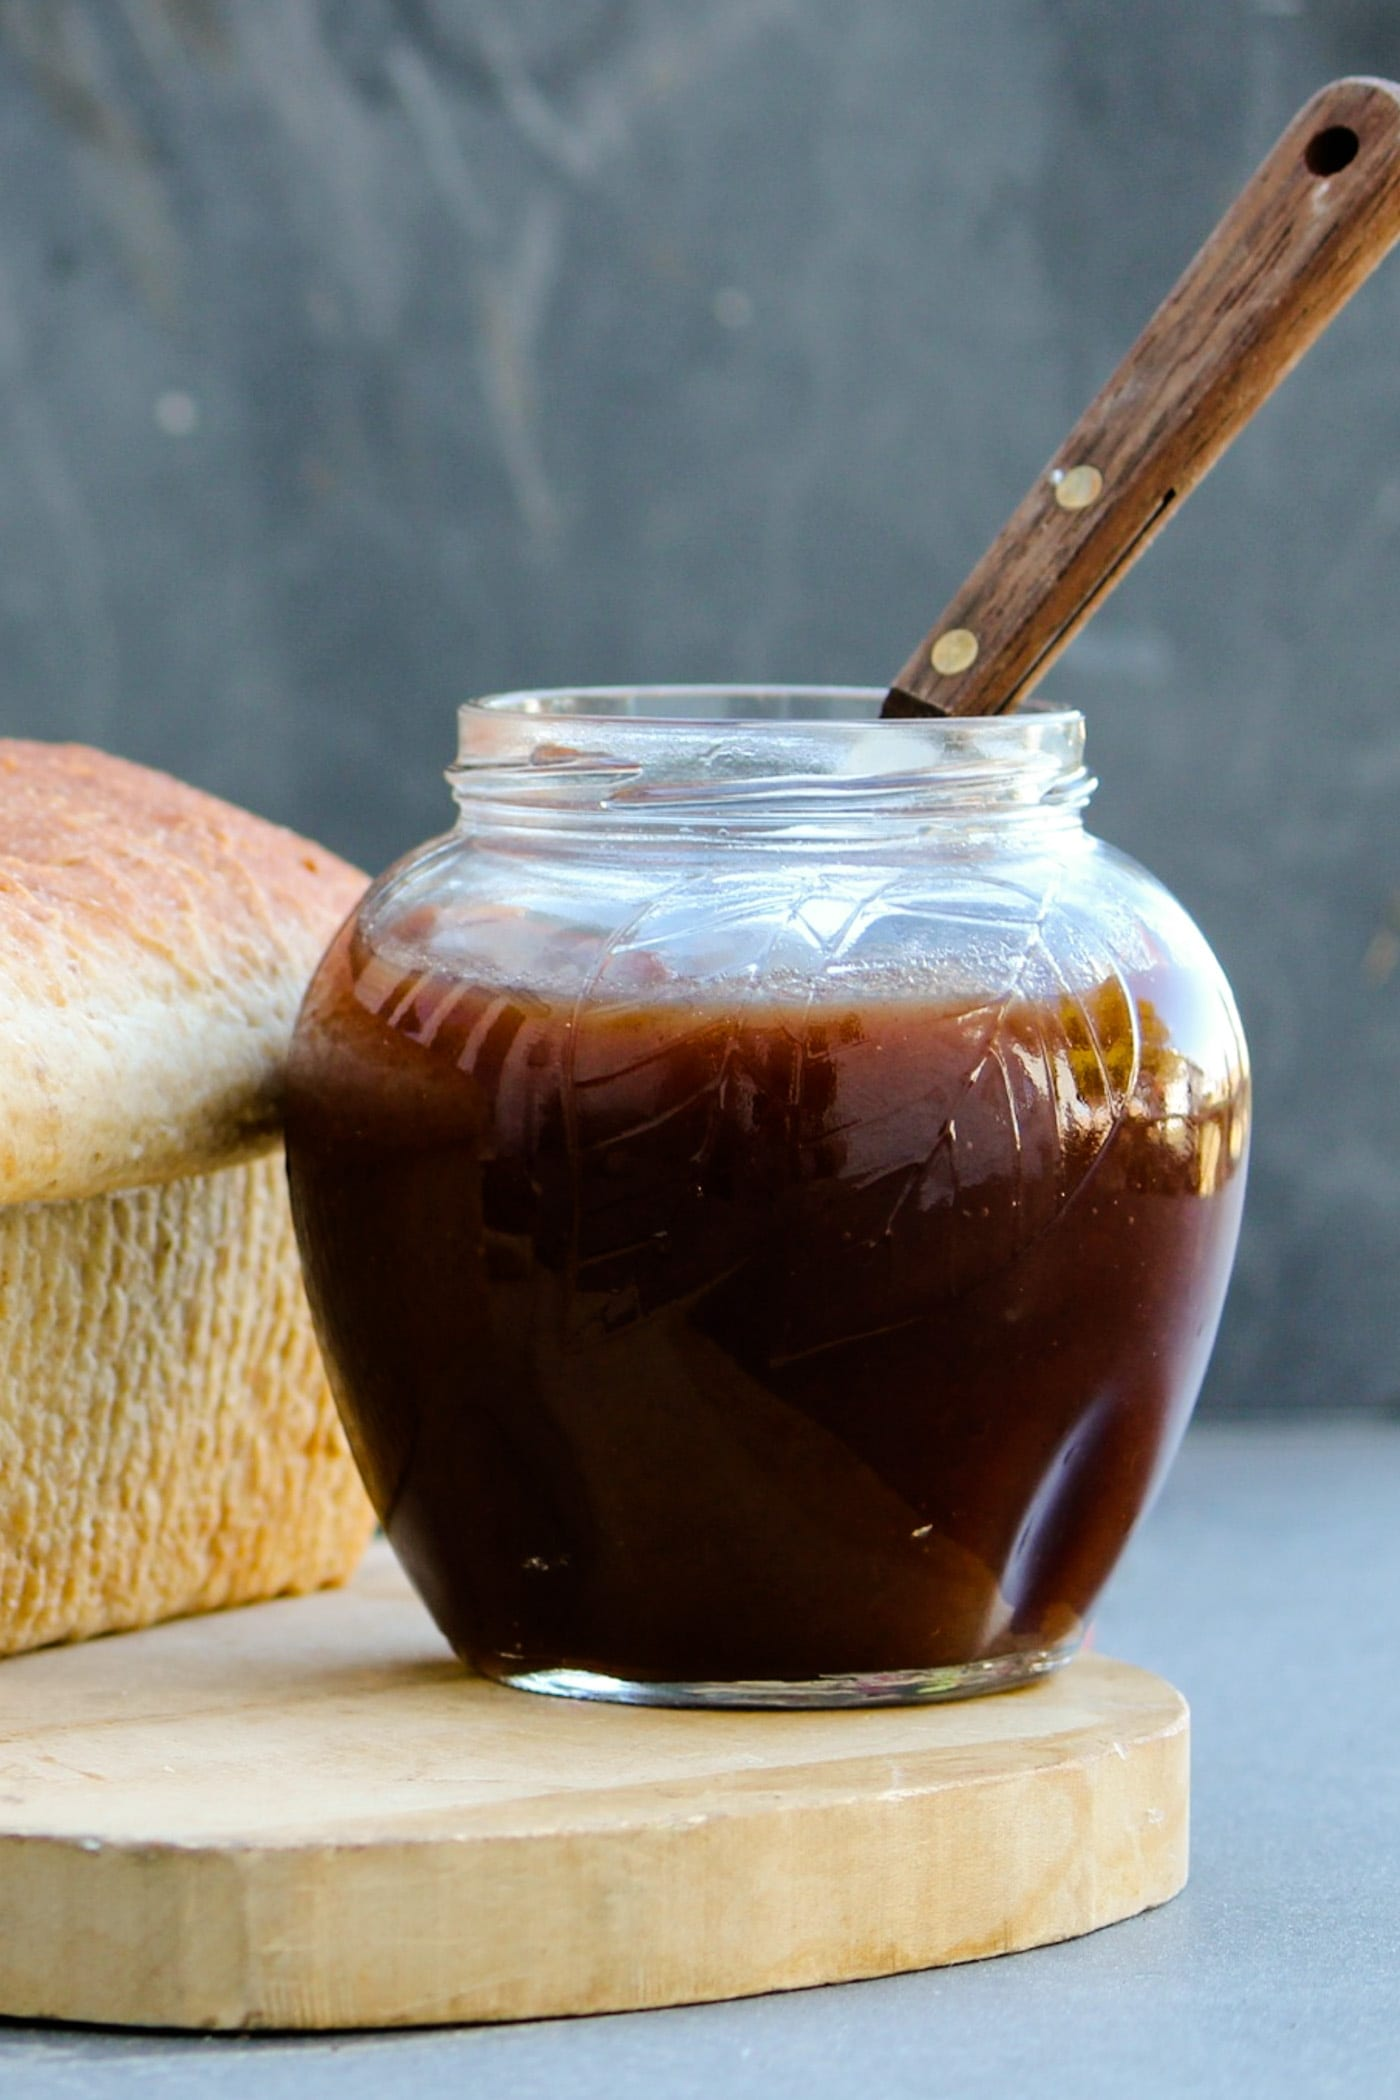 Jar of slow cooker apple butter with loaf of bread beside it and knife sitting on a wood cutting board in front of a gray slate surface